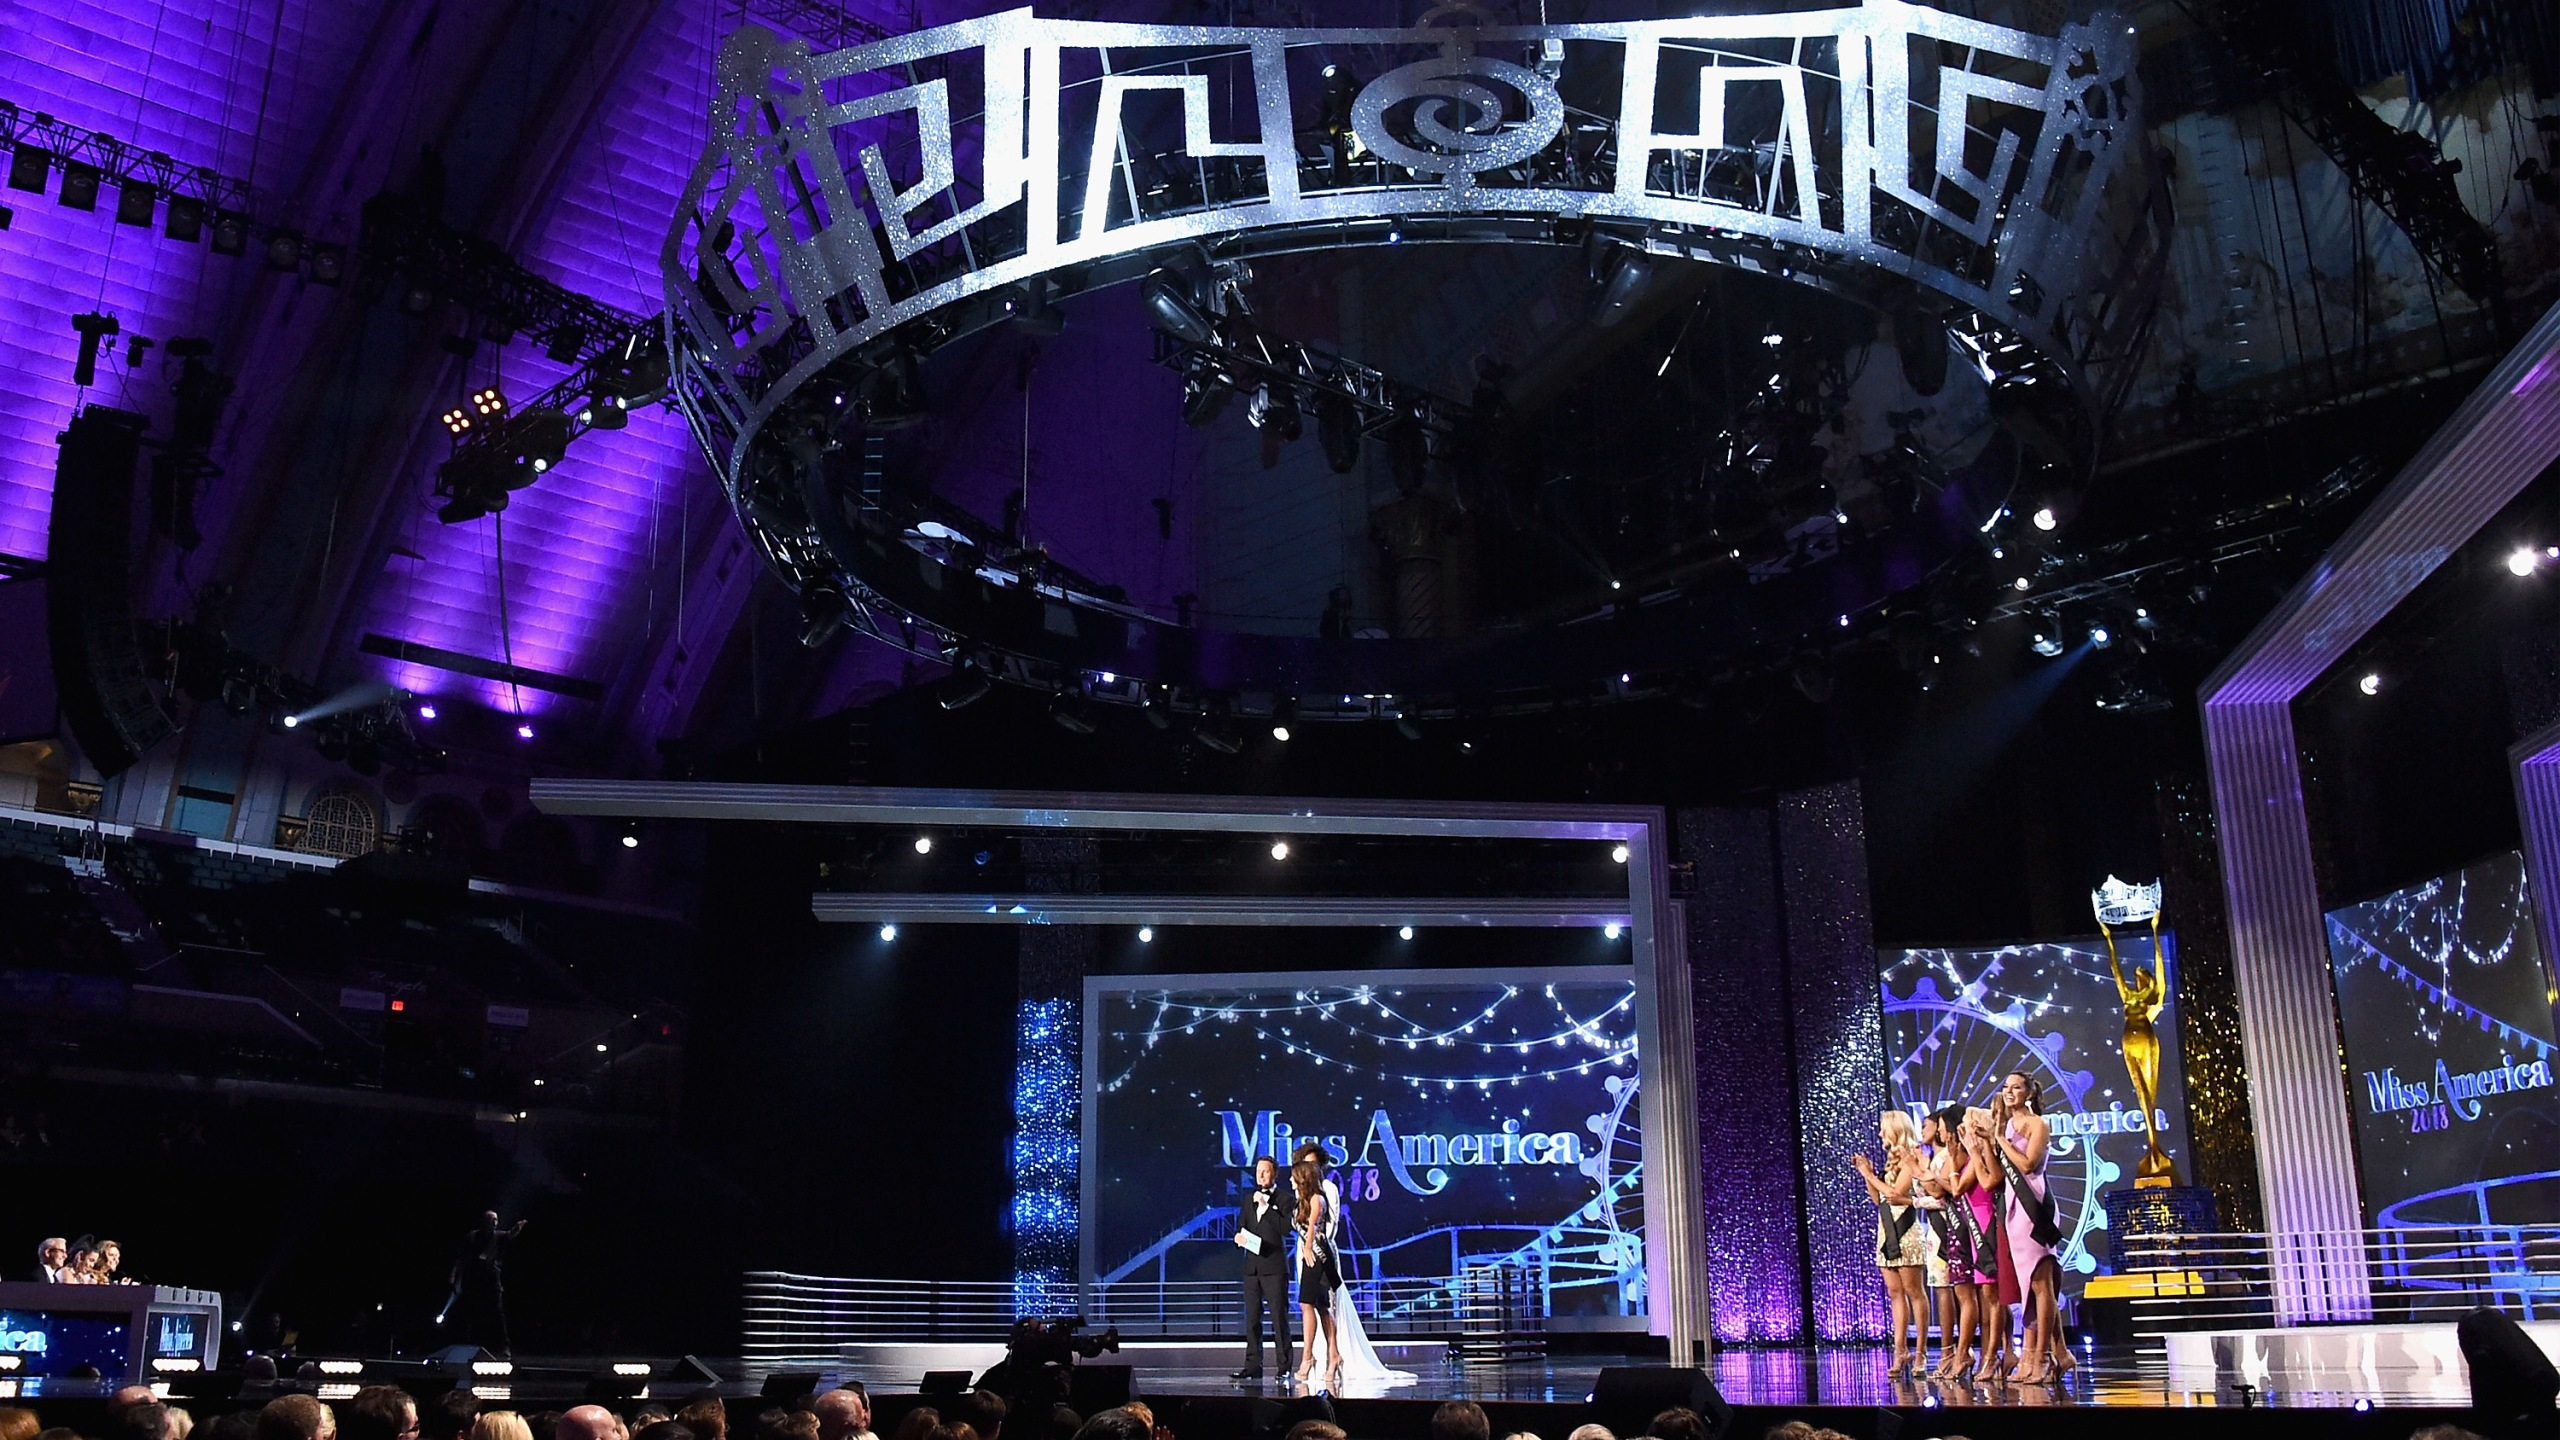 The 2018 Miss America Competition Show at Boardwalk Hall Arena on Sep. 10, 2017, in Atlantic City, New Jersey. (Credit: Michael Loccisano/Getty Images for Dick Clark Productions)